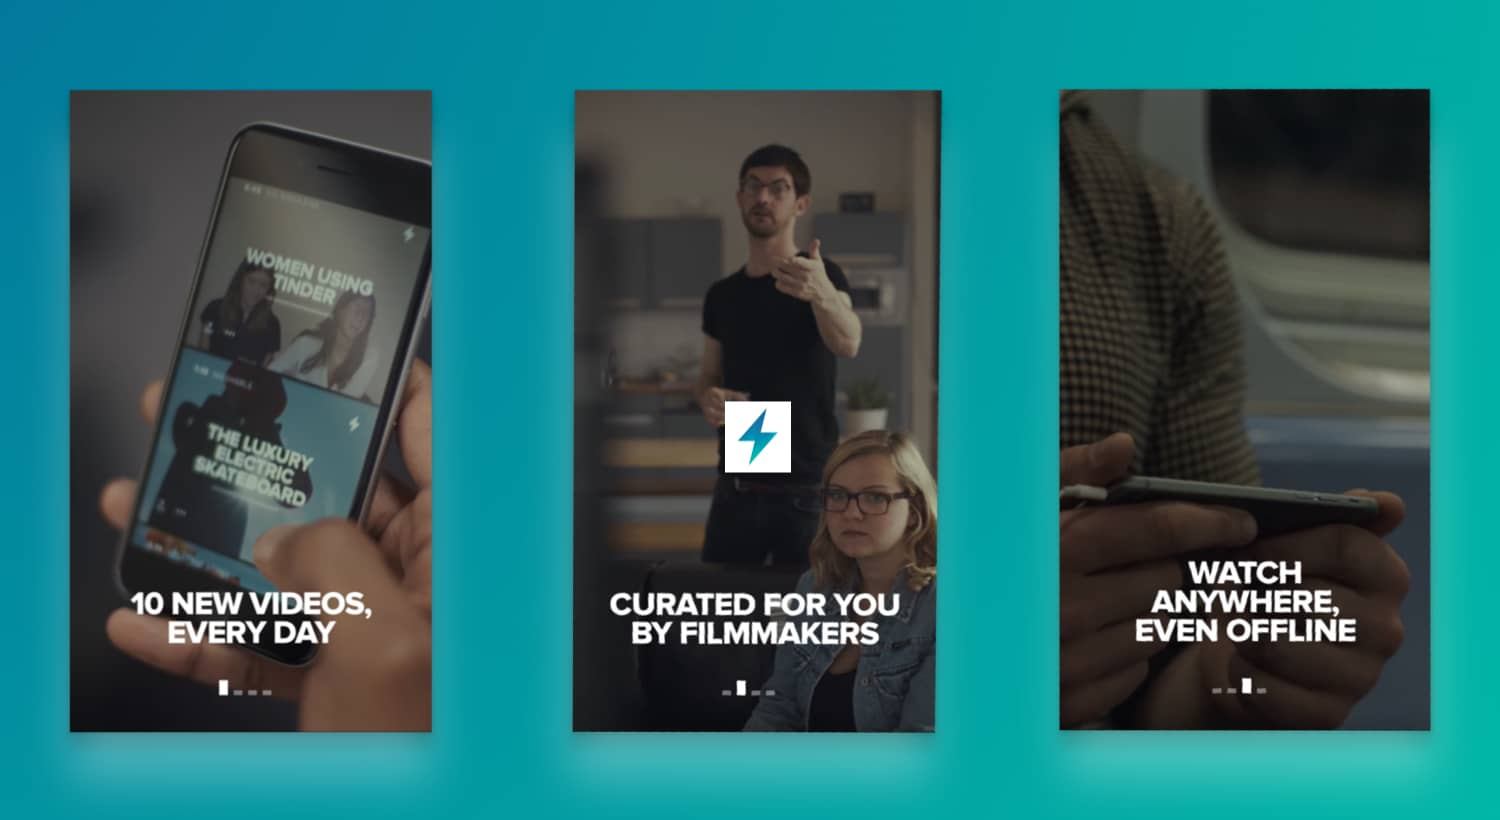 Hyper-Daily-Curated-List-of-Videos-by-Filmmakers-Onboarding